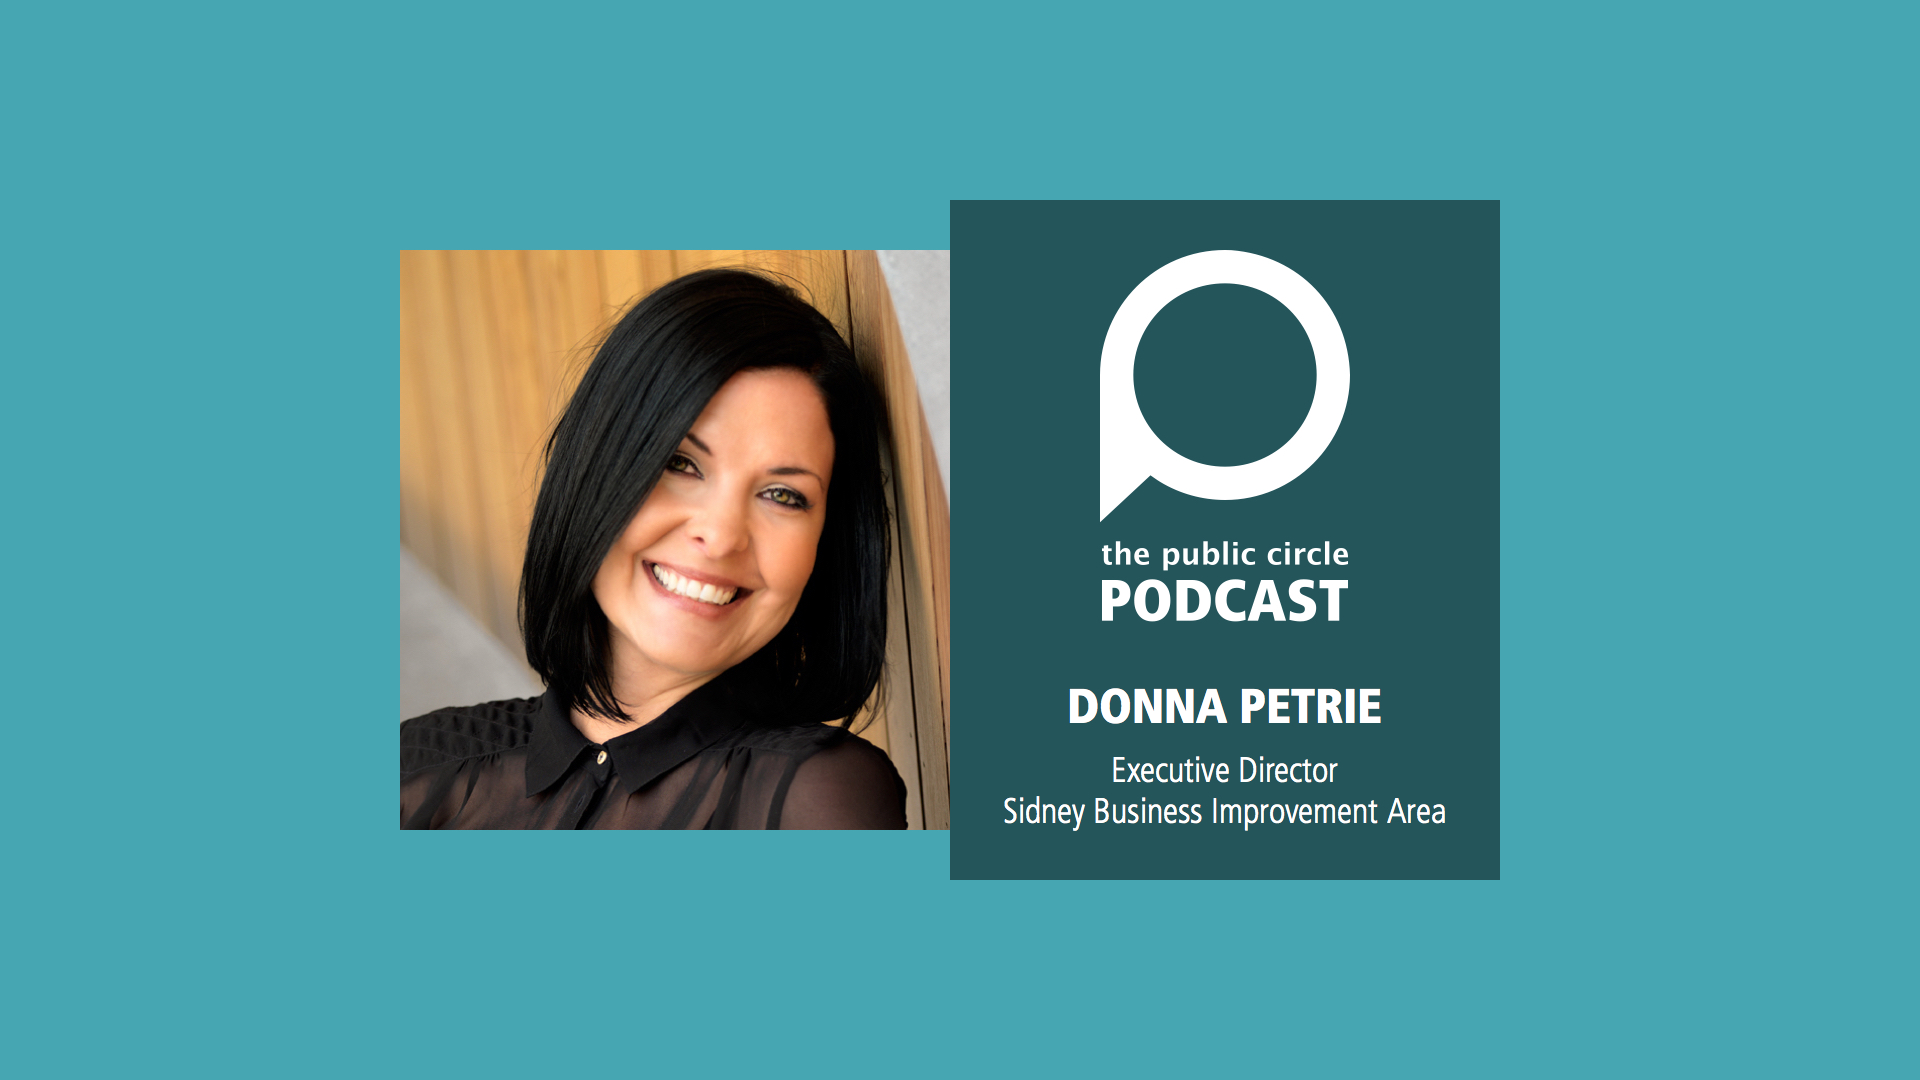 PODCAST: Donna Petrie, Executive Director of the Sidney BIA